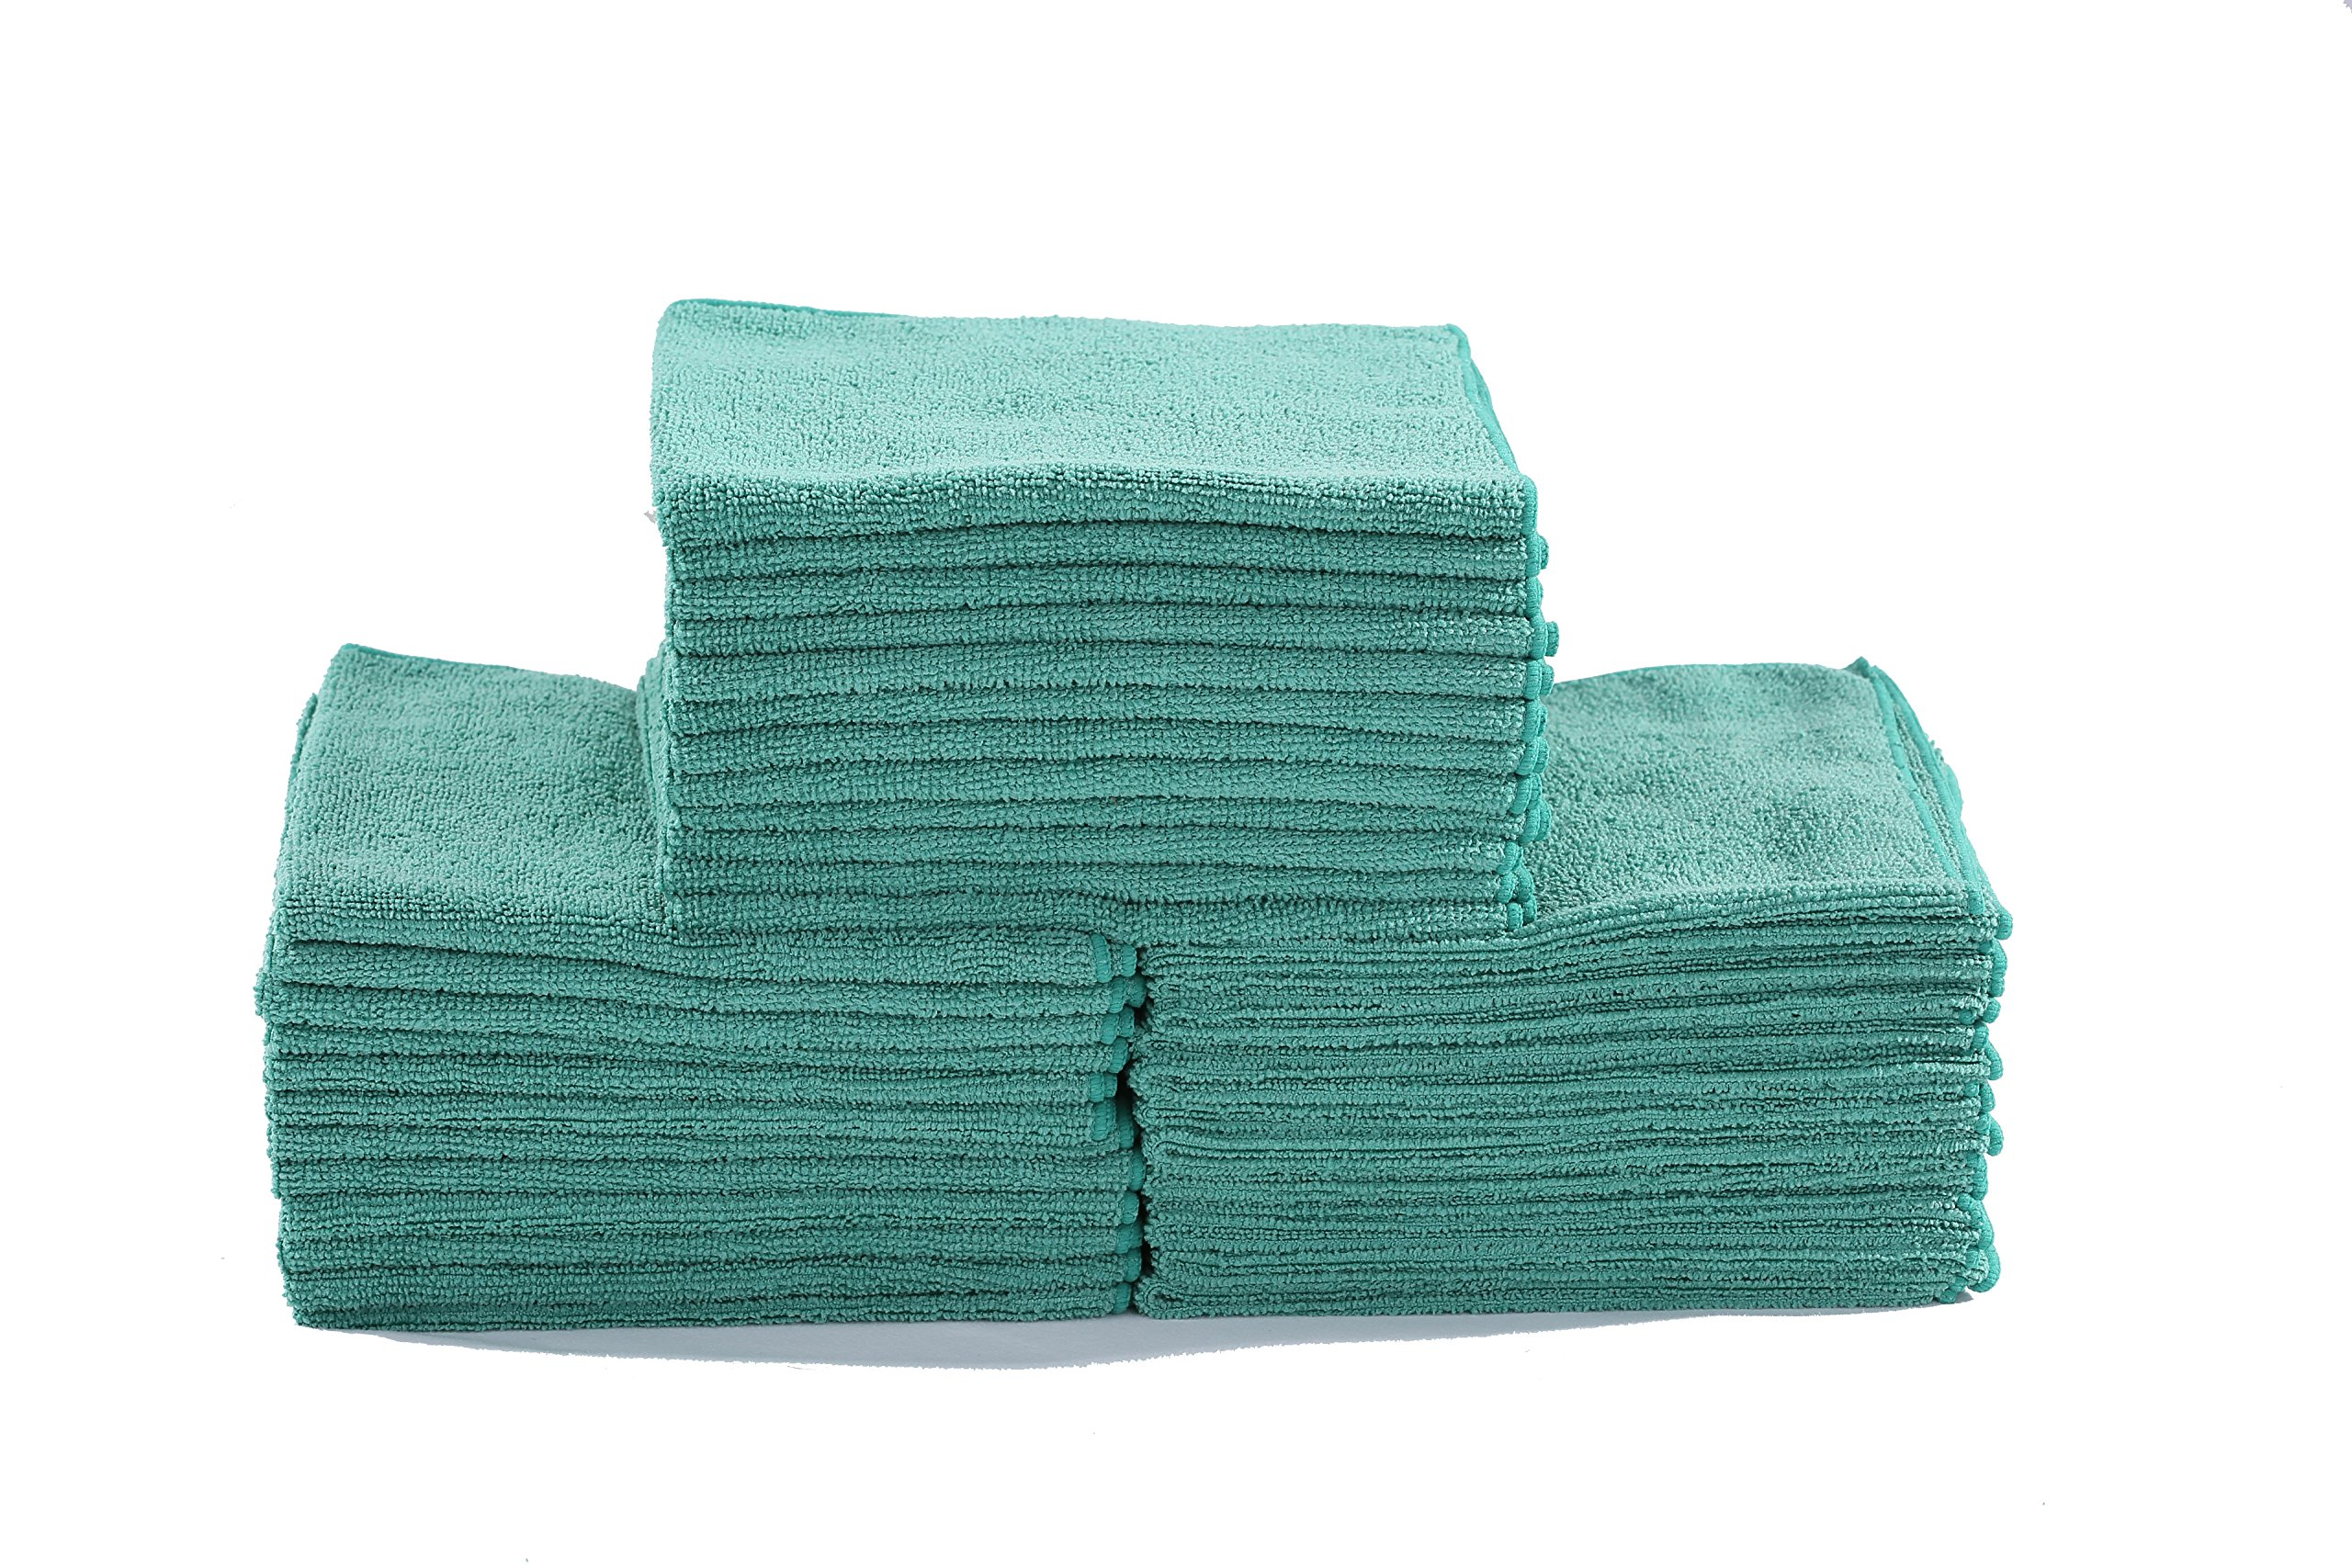 Dri Professional Extra-Thick Microfiber Cleaning Cloth - 16 in x 16 in - 72 Pack (Green) - Ultra-absorbent, quick drying, chemical-free cleaning